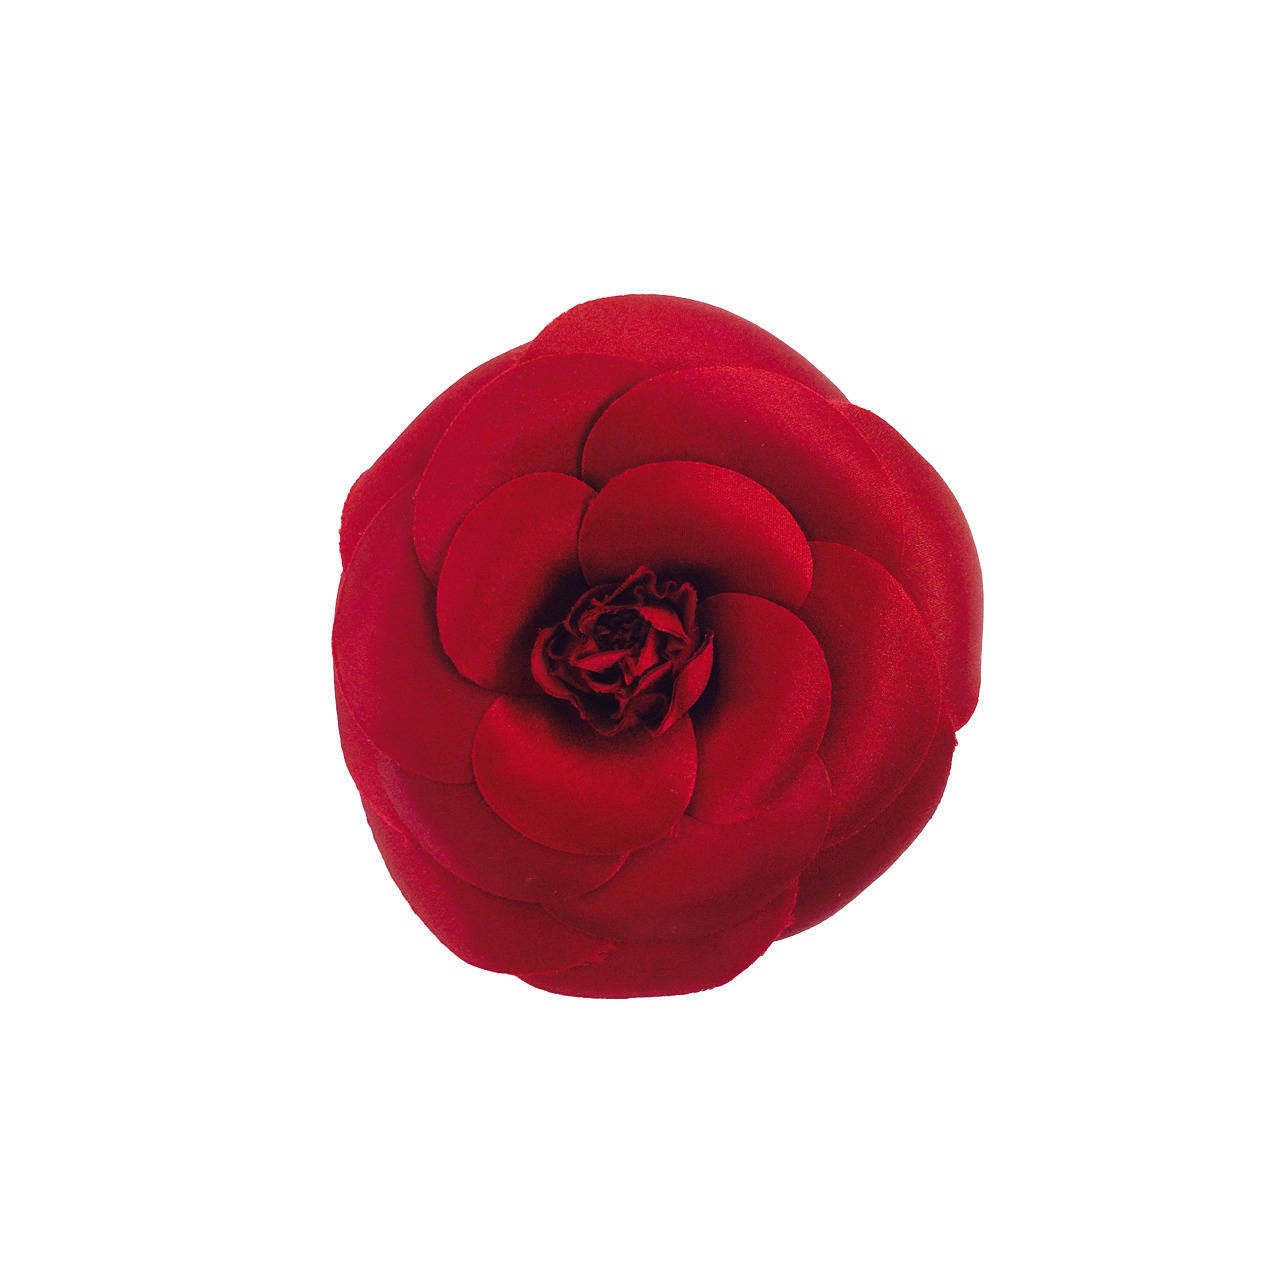 Chanel large deep red silk camellia flower pin in box 1